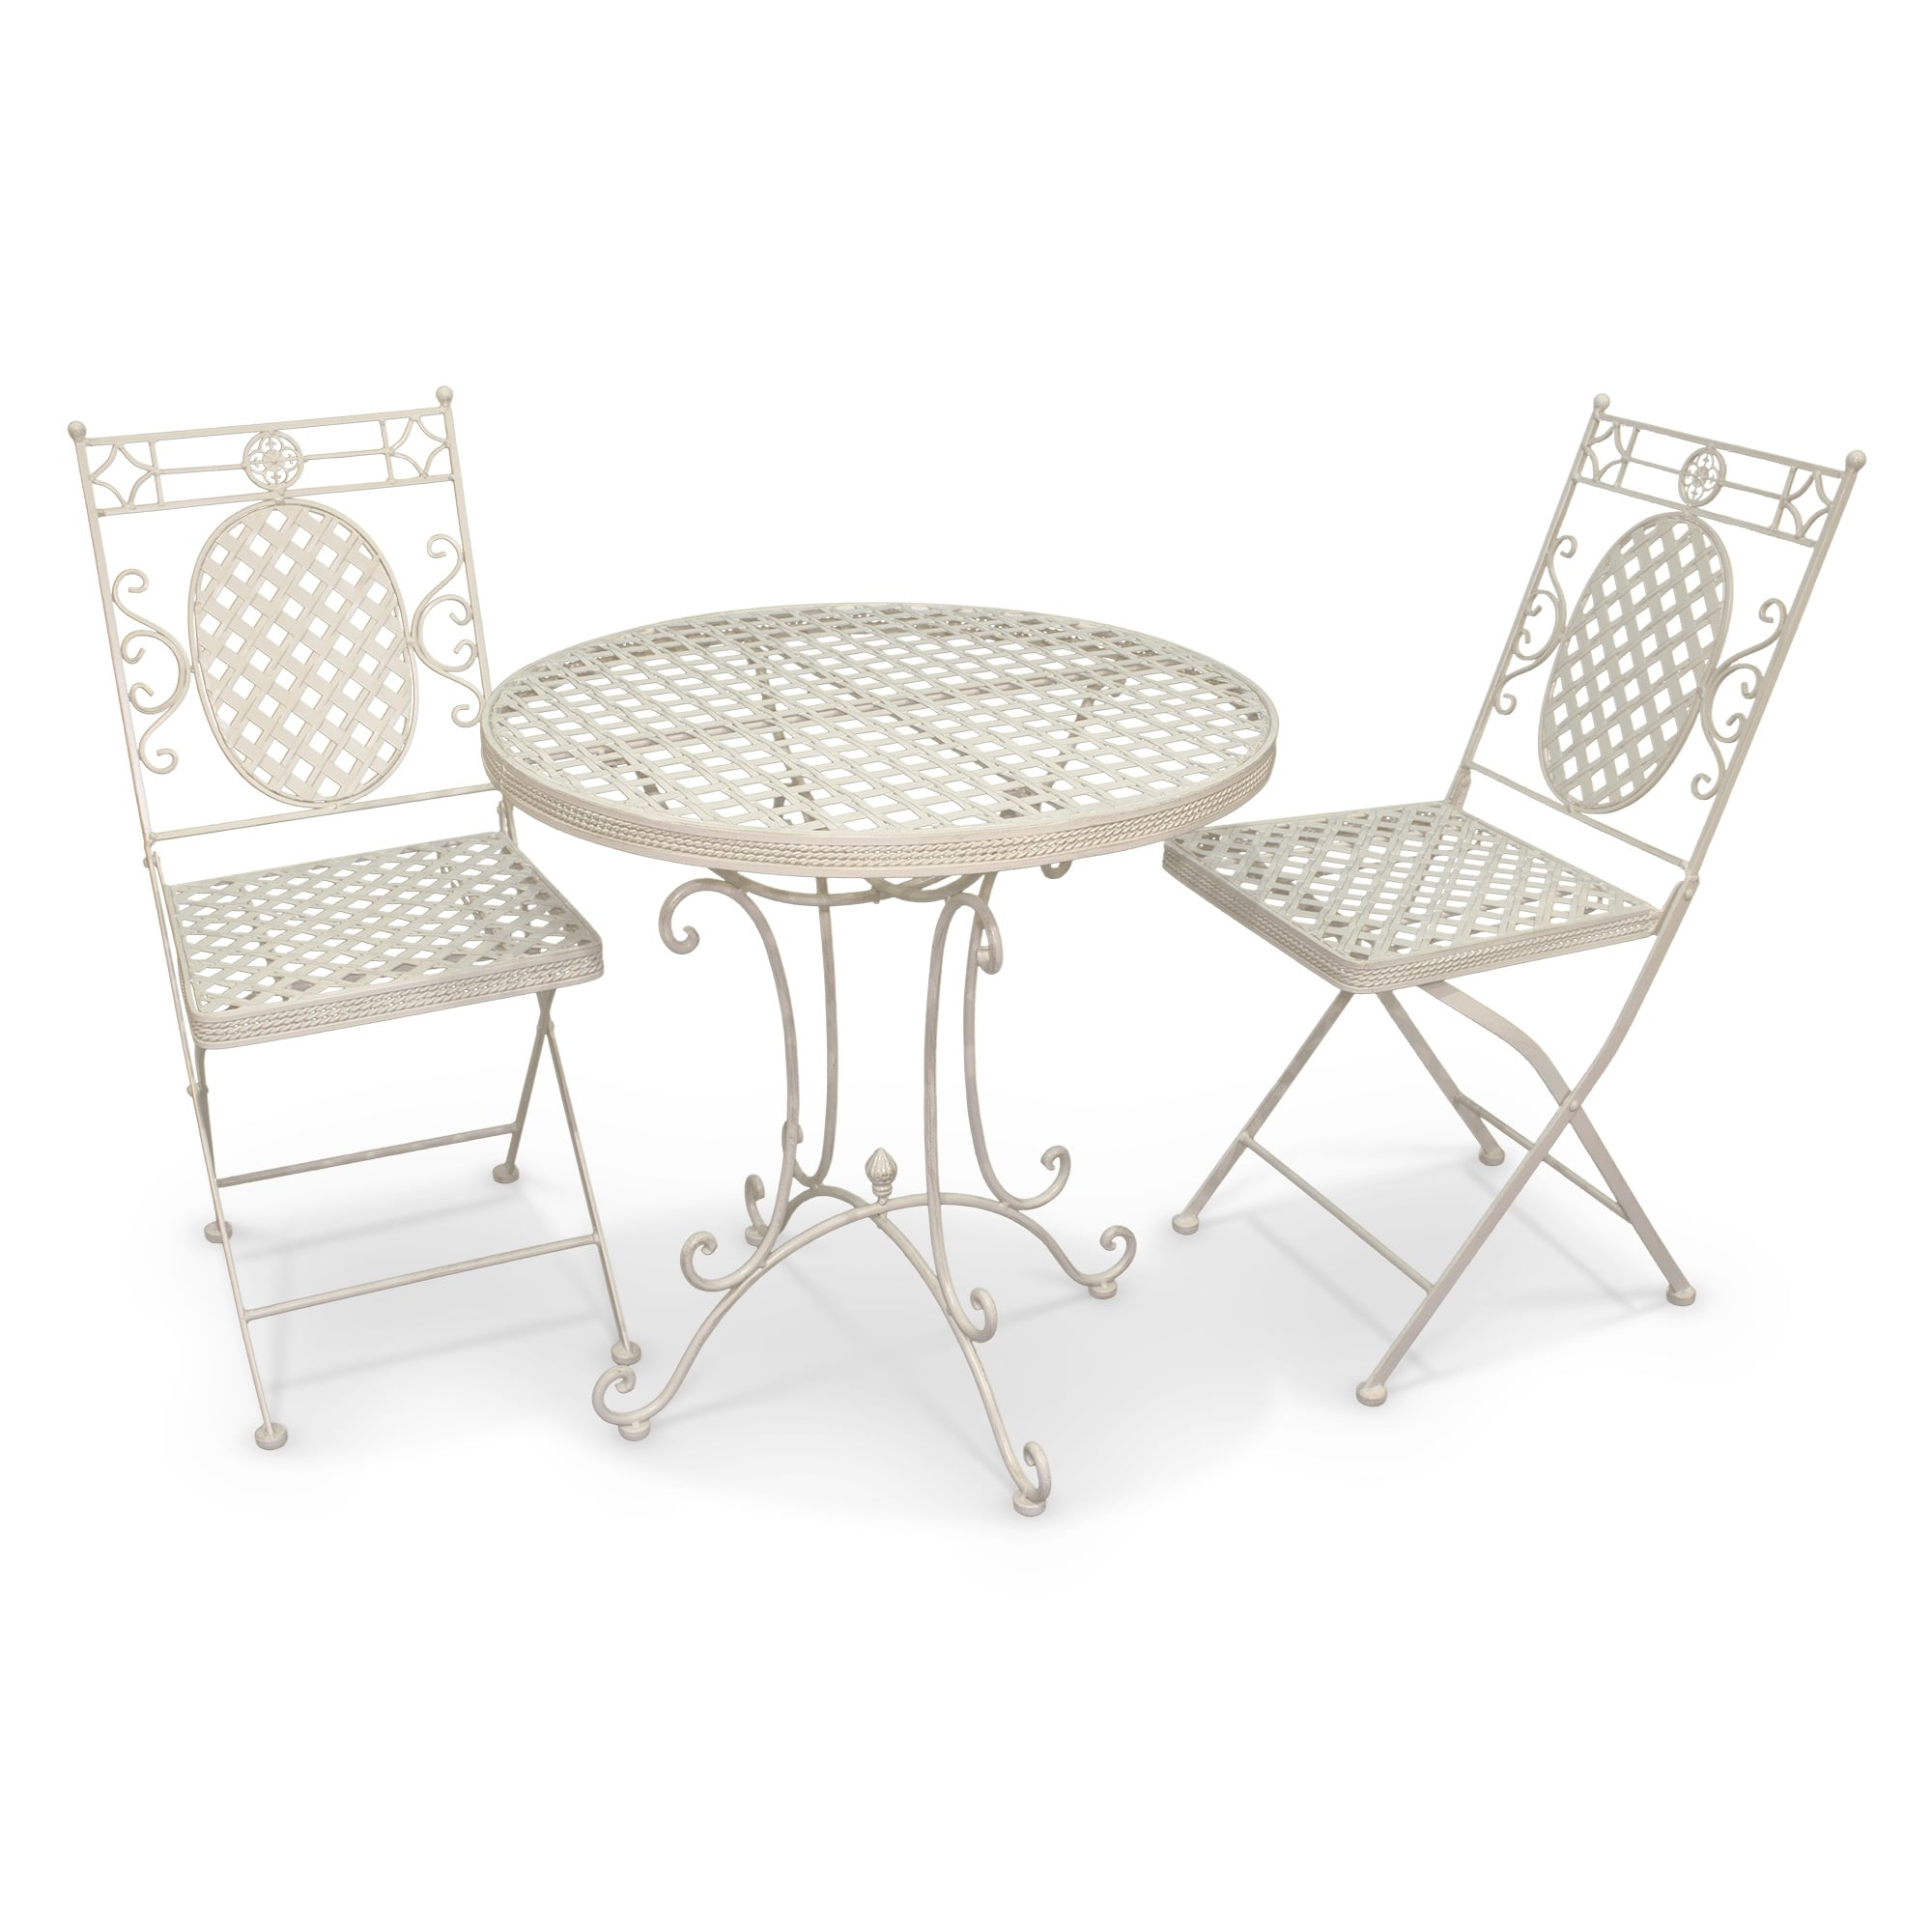 Ordinaire Alessia Metal Garden Furniture The Alessia Garden Furniture Range Has A  Slightly More Retro Feel With Clean, Modern Lines In Its Design.